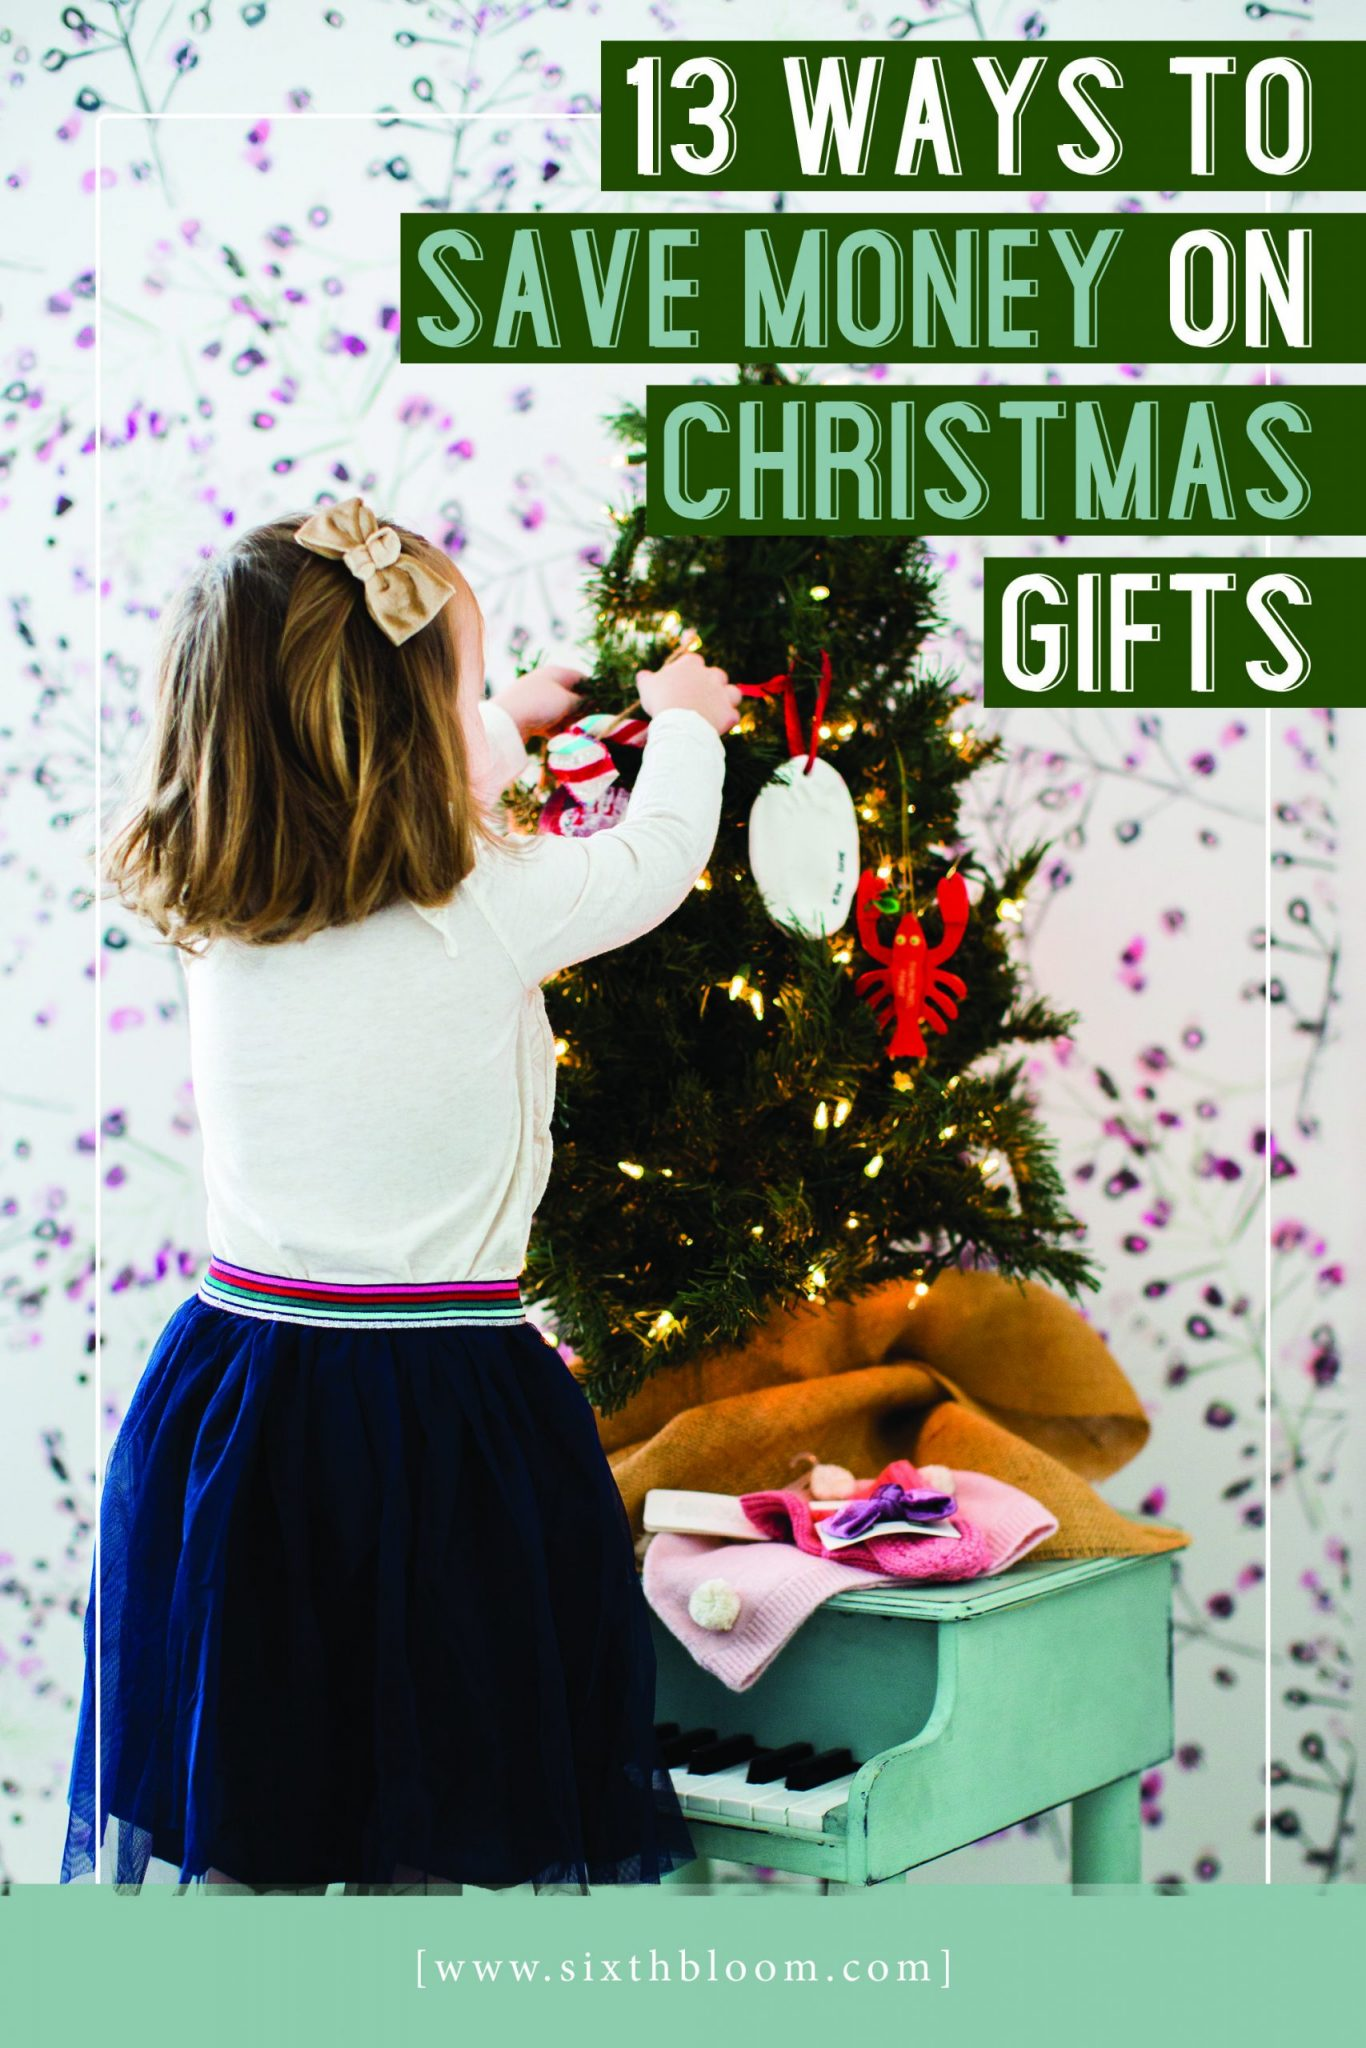 learn ways to save money on Christmas gifts